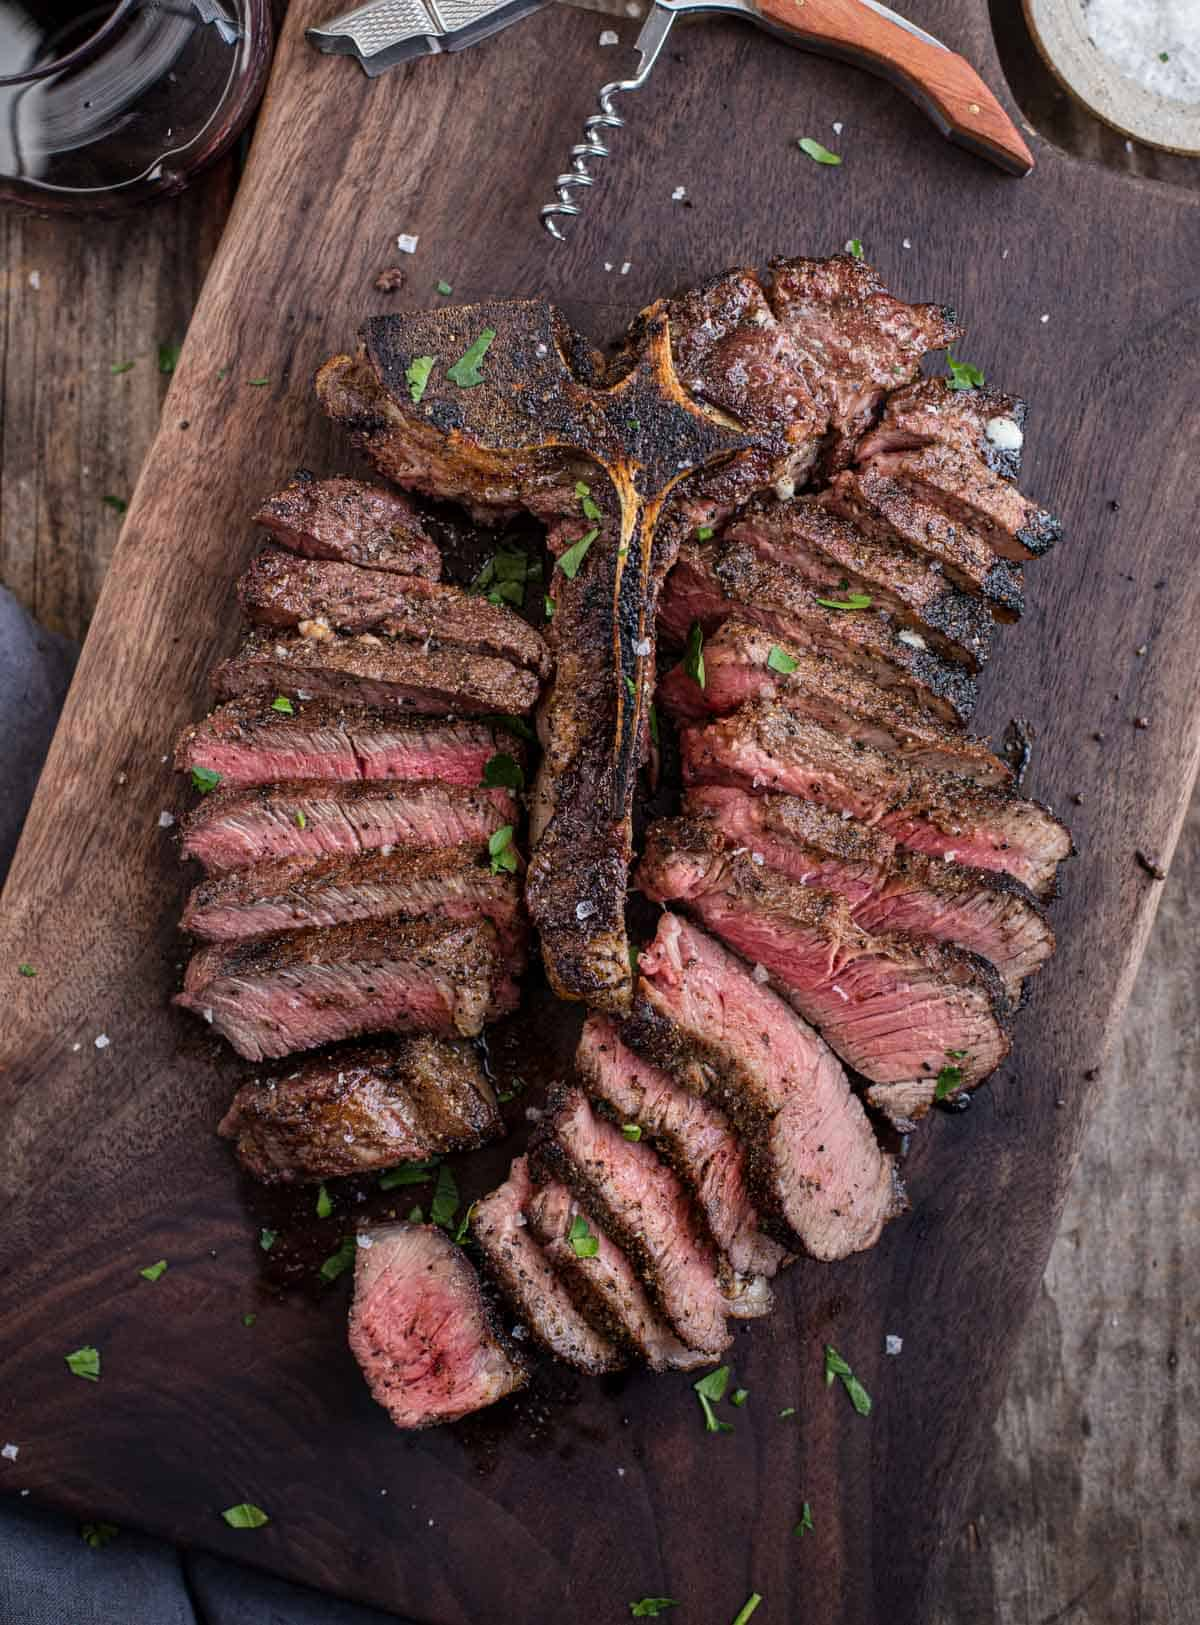 Sliced Porterhouse Steak paired with a glass of Sangiovese wine